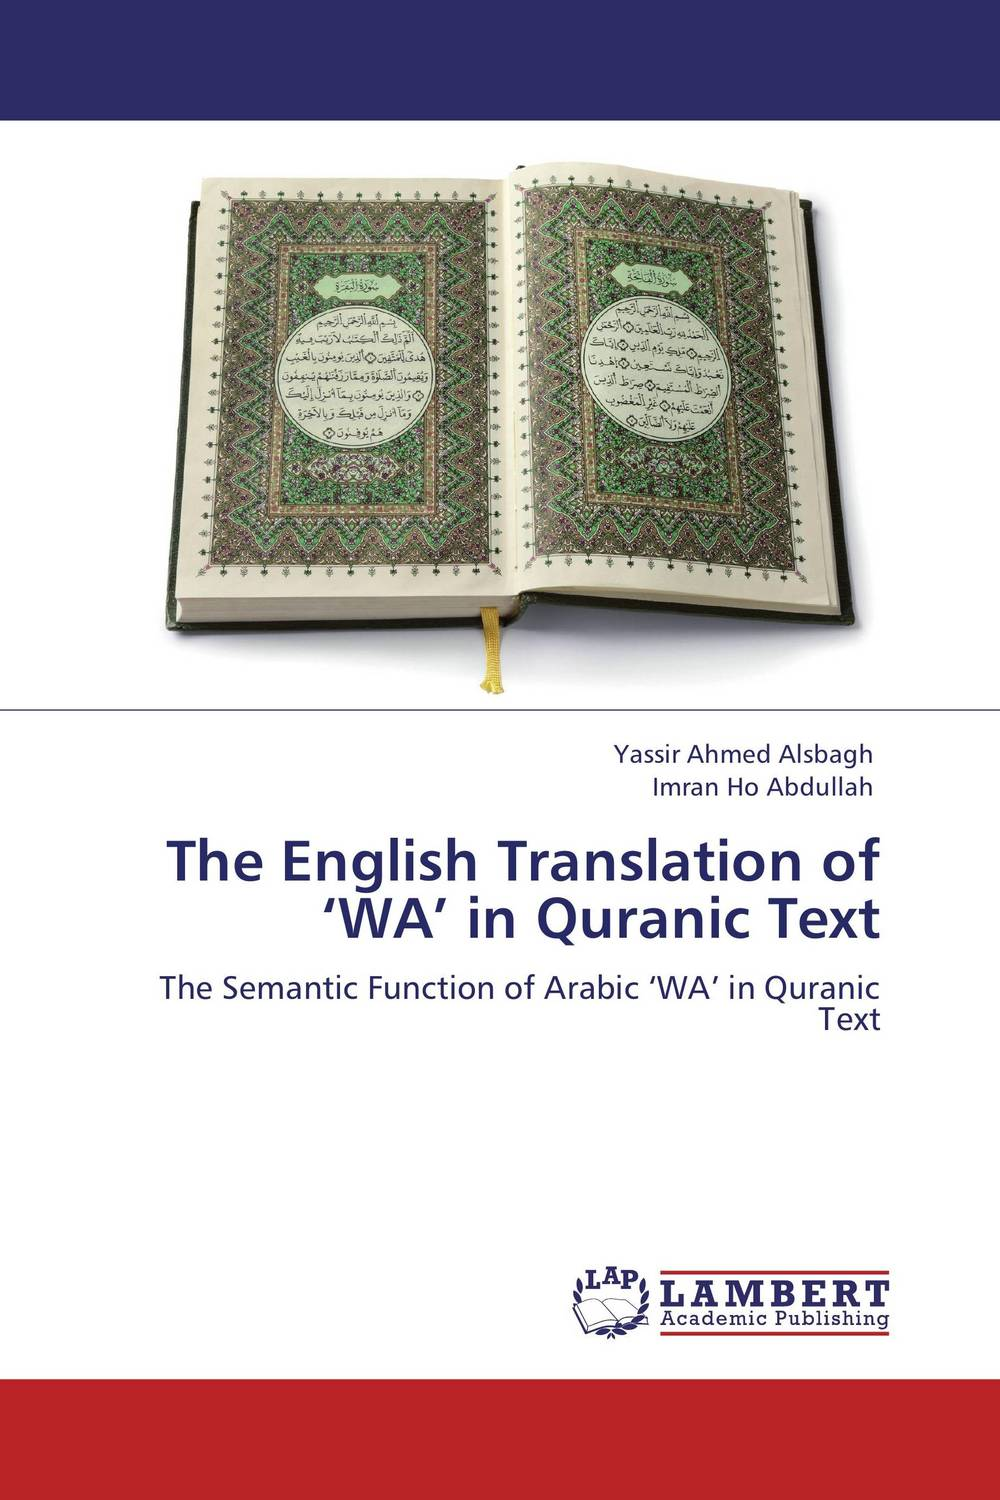 The English Translation of 'WA' in Quranic Text link for tractor parts or other items not found in the store covers the items as agreed